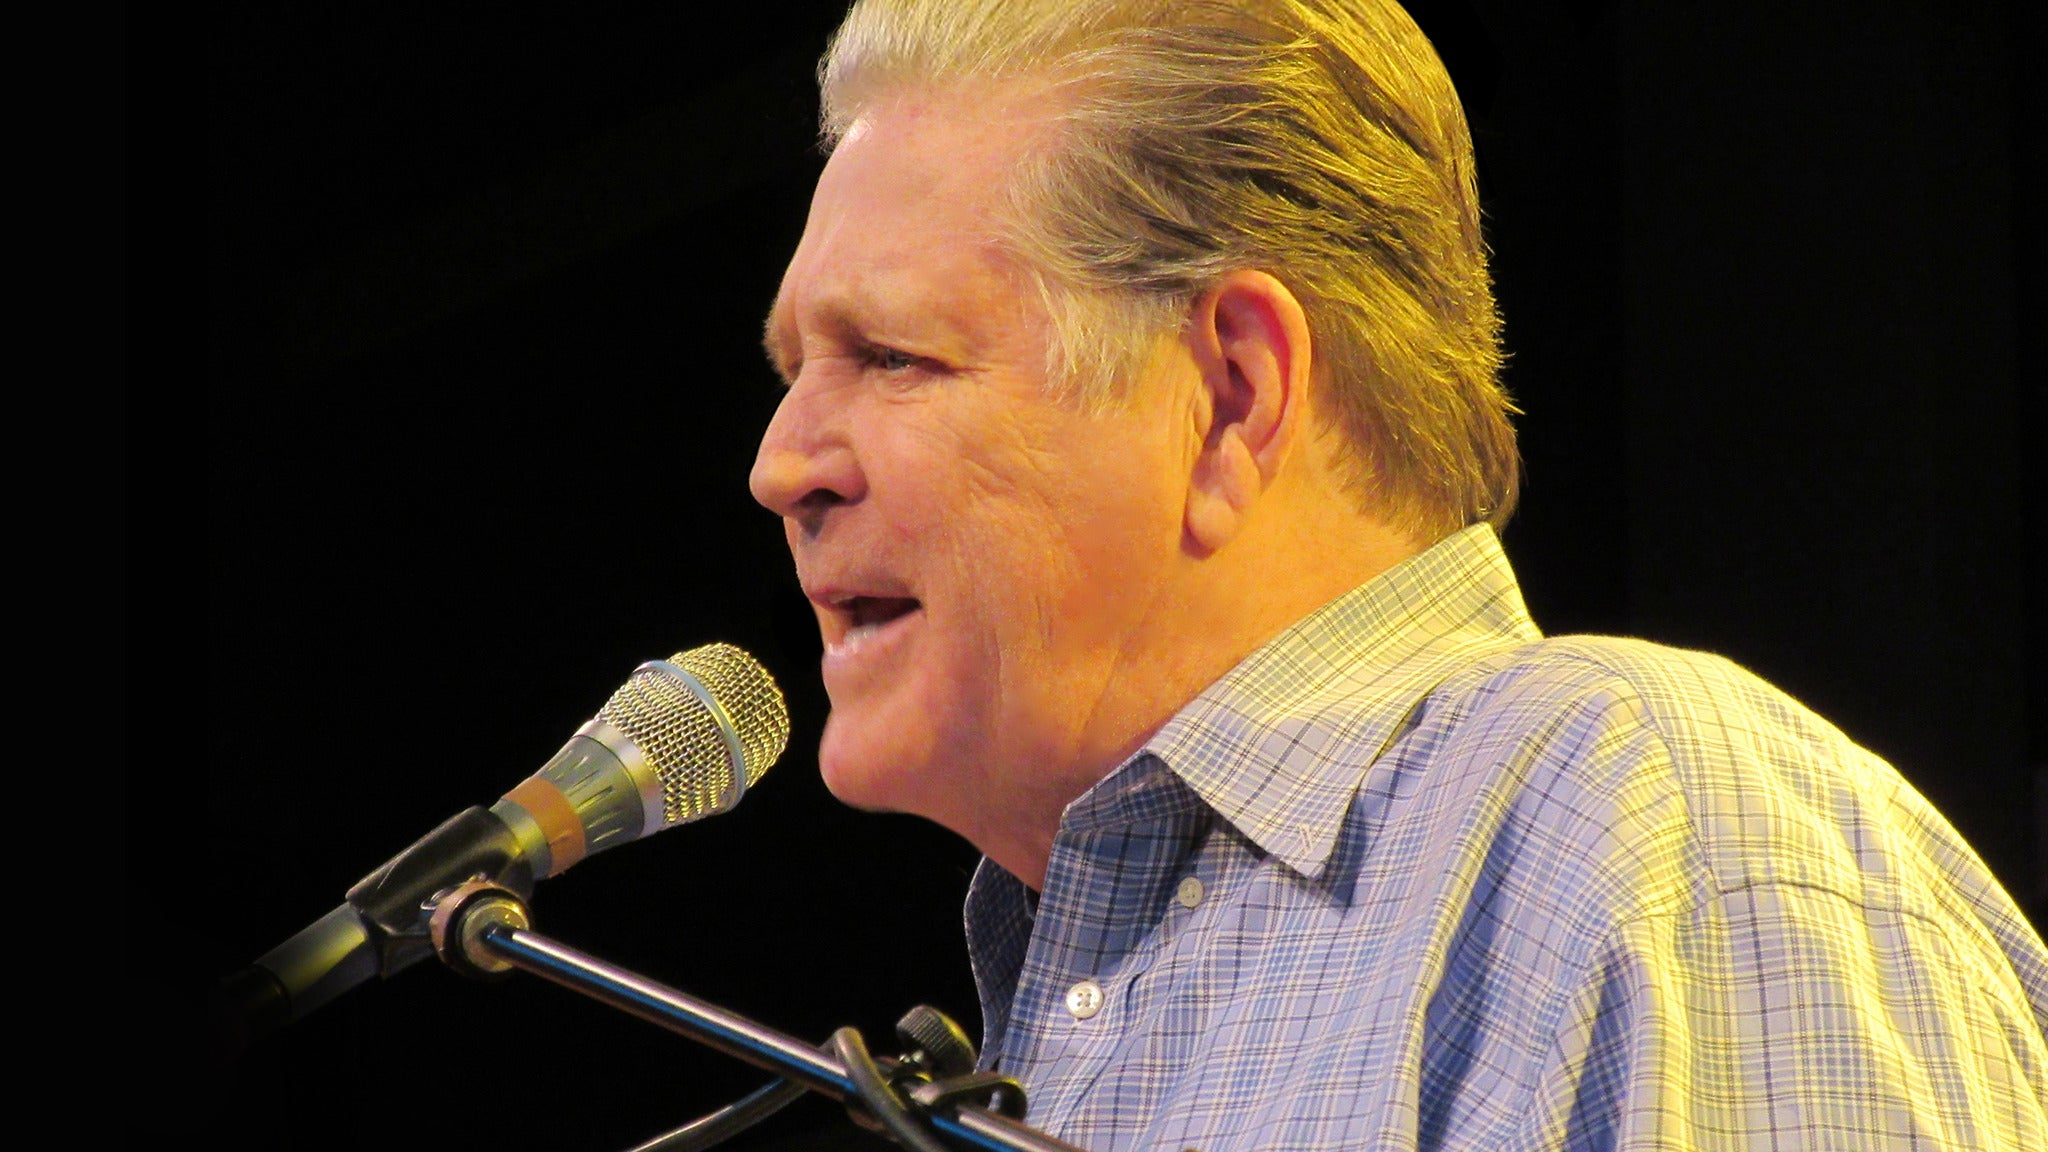 Brian Wilson presents Pet Sounds: The Final Performances